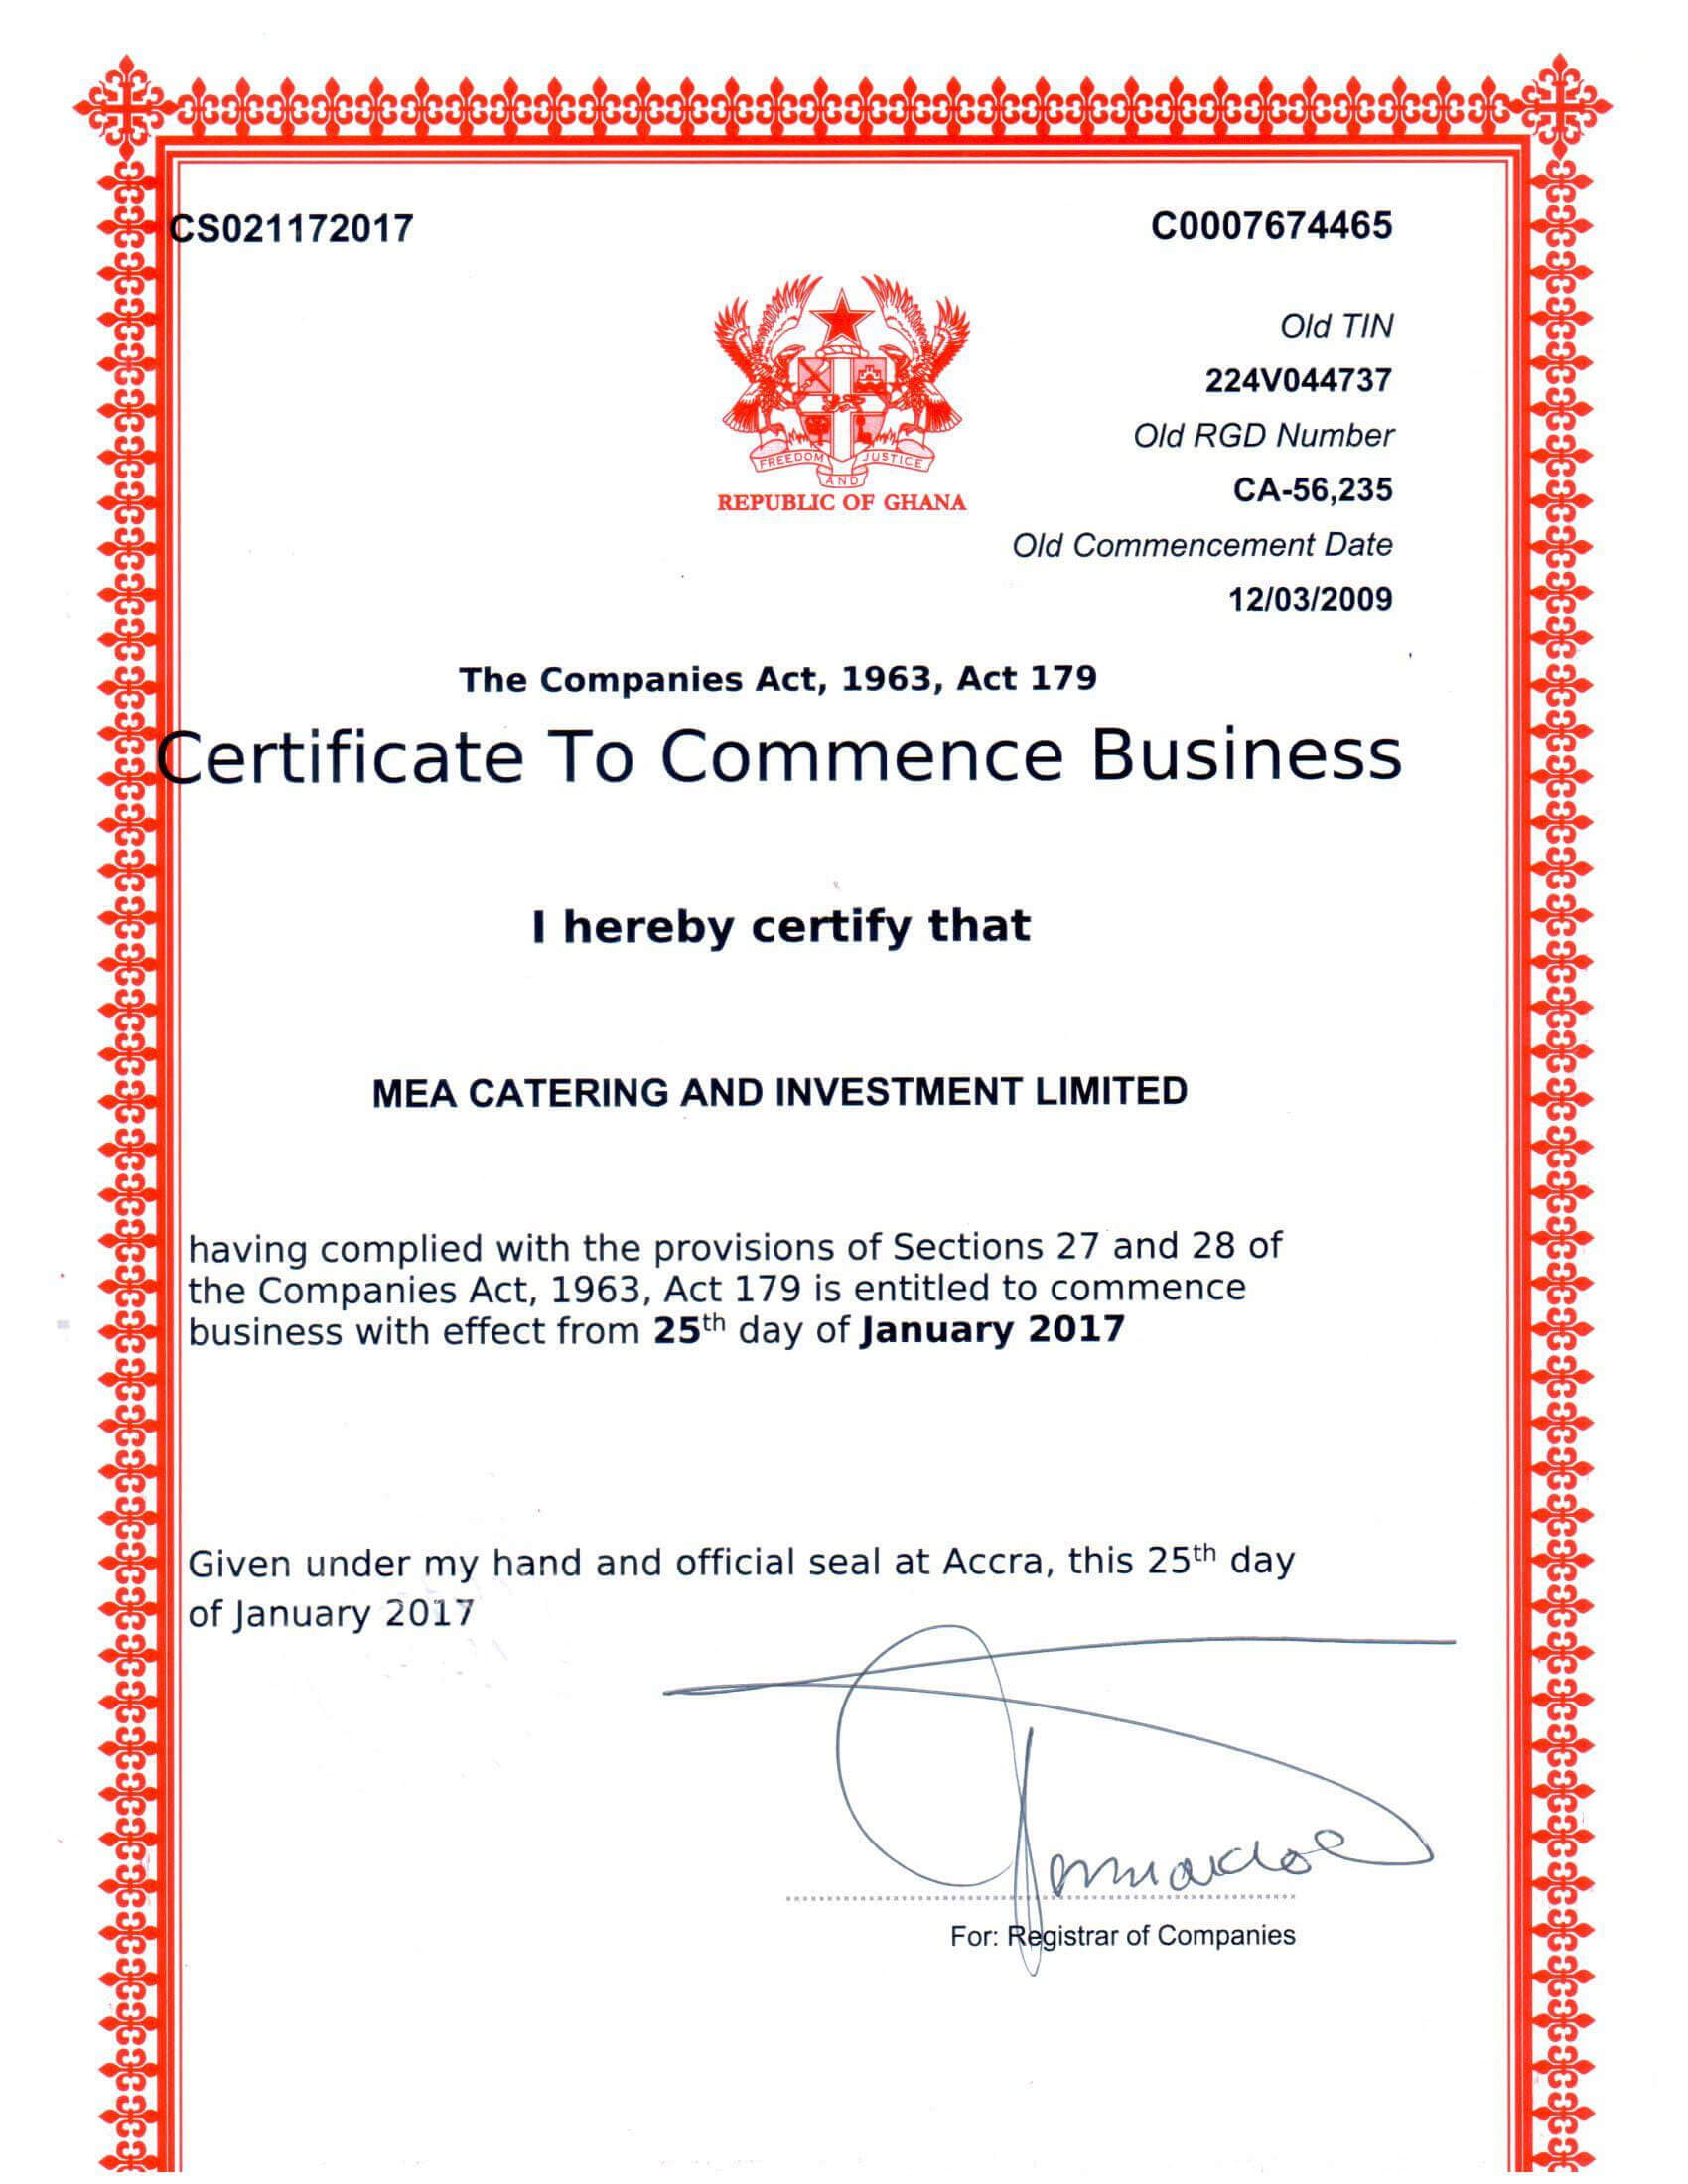 CERTIFICATE-TO-COMMENCE-BUSINESS-1_1